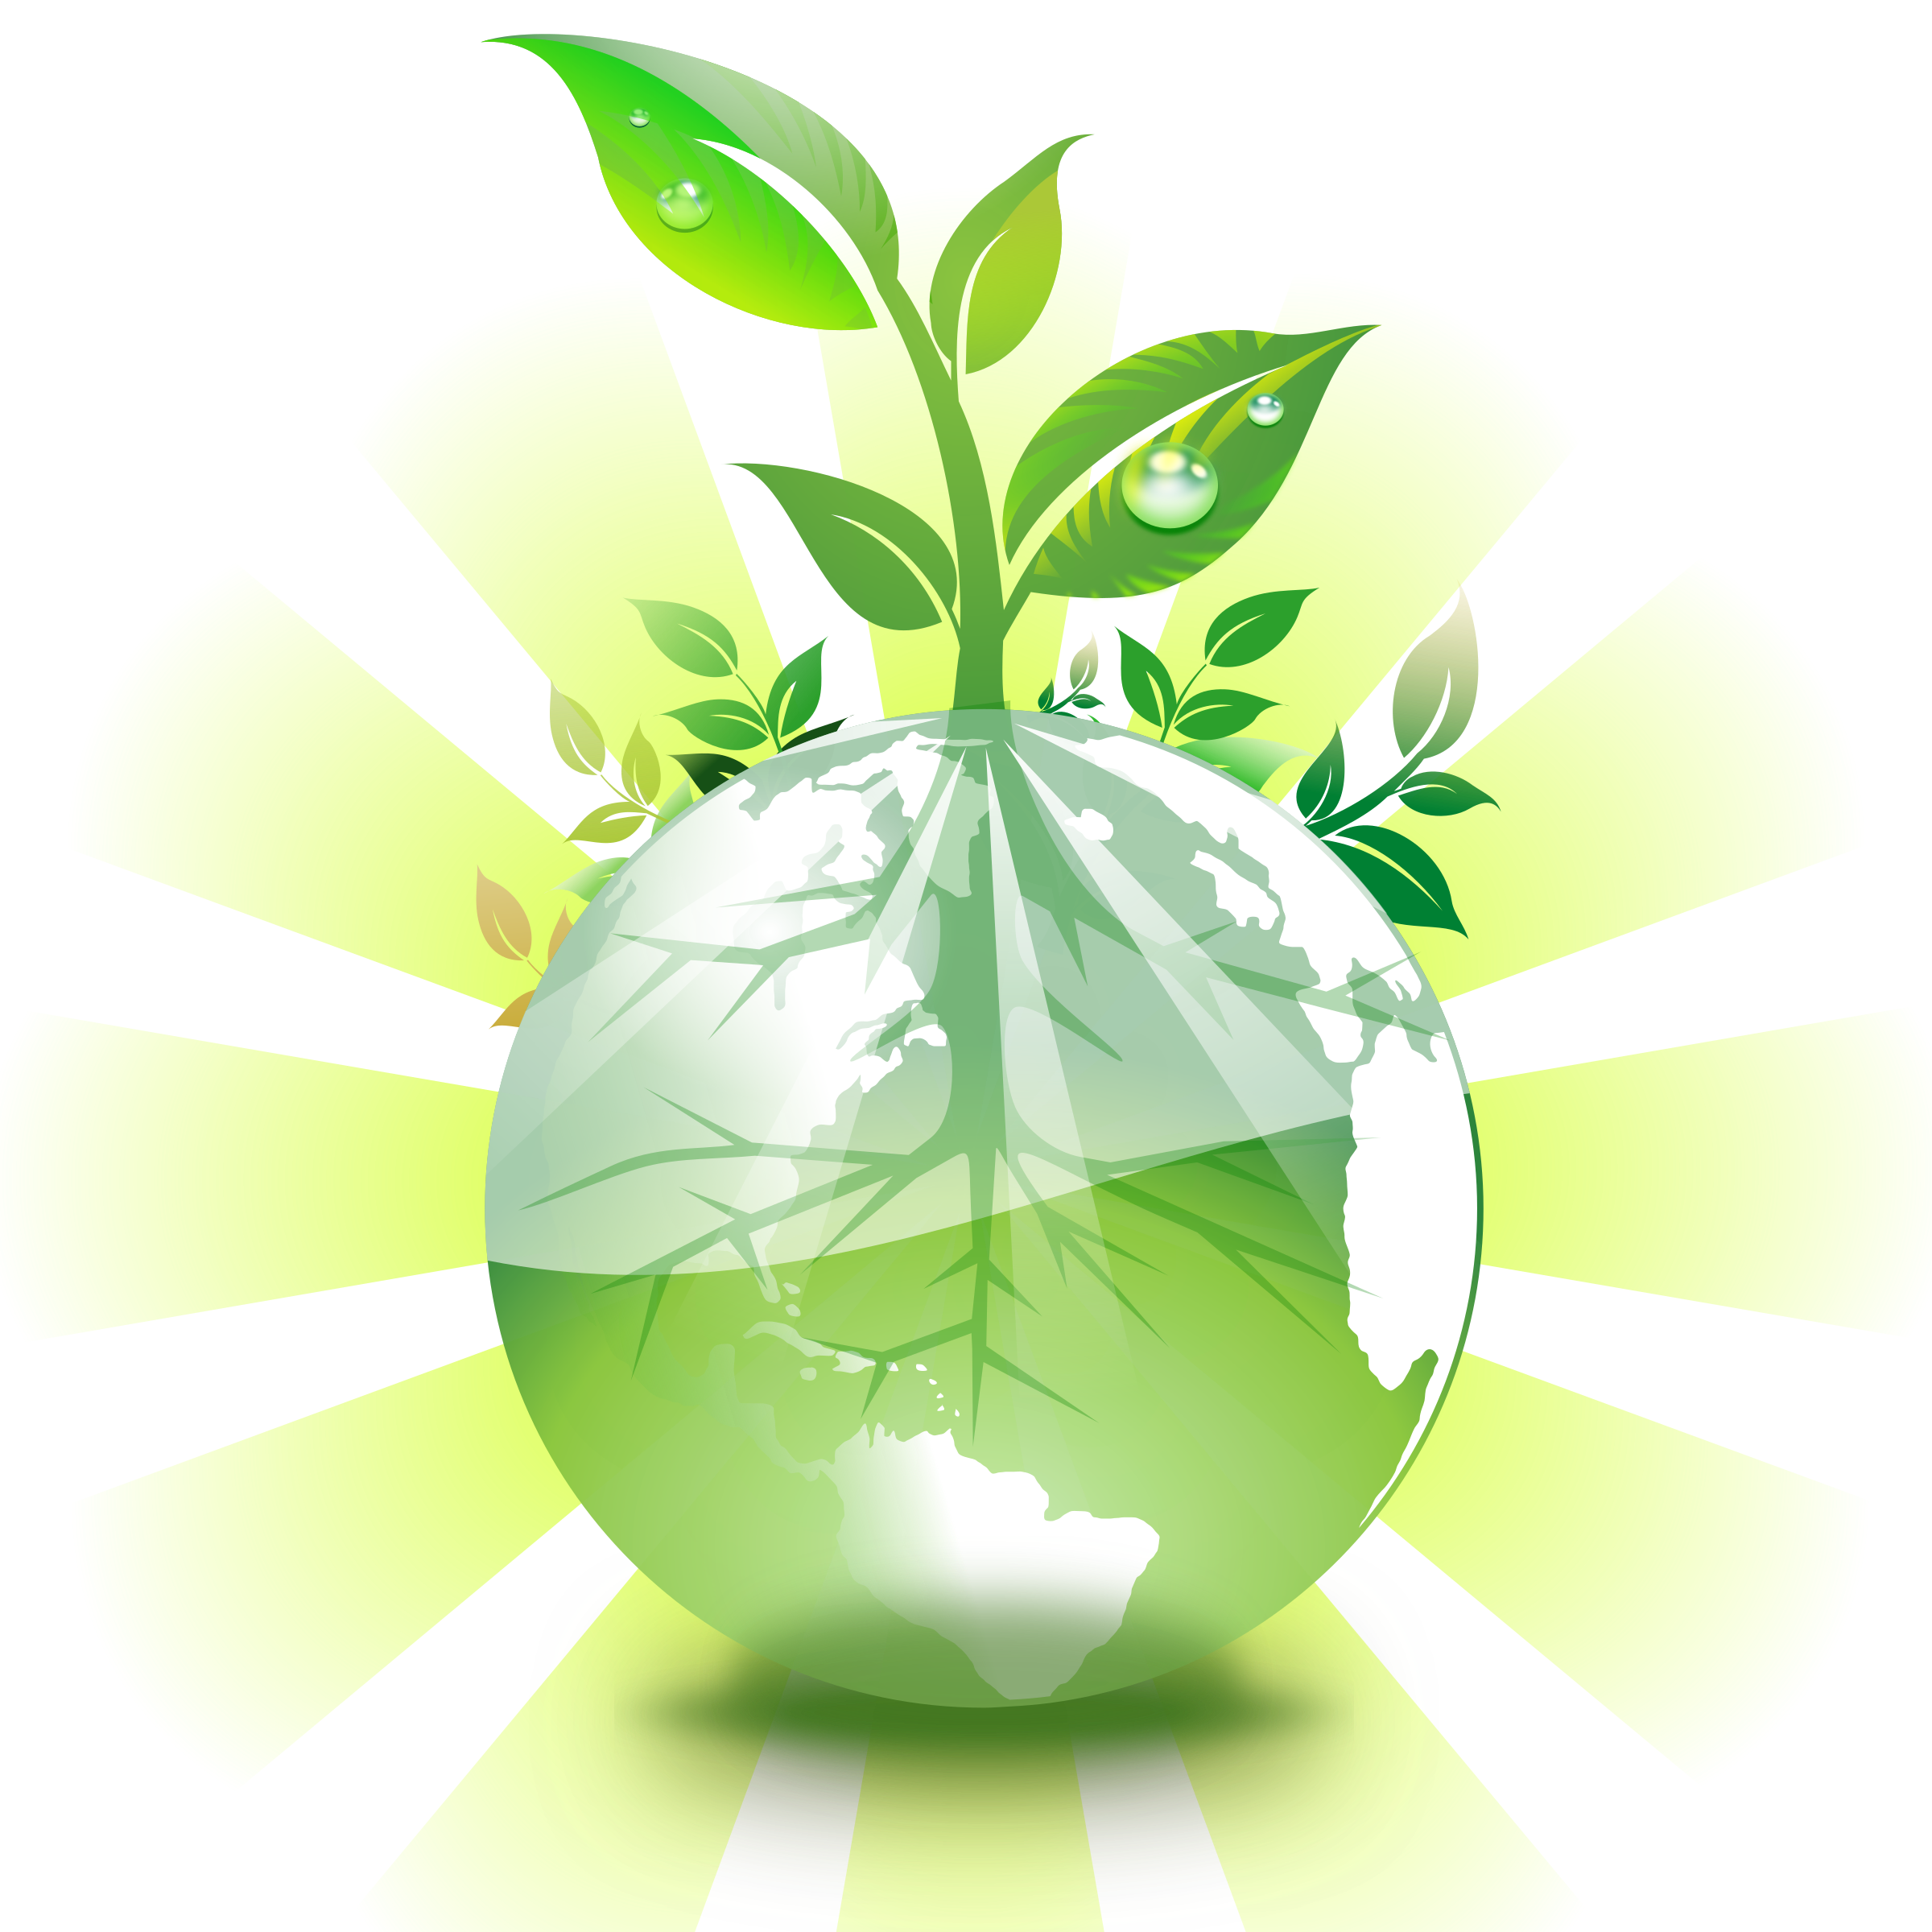 Planet clipart green planet. Earth big image png